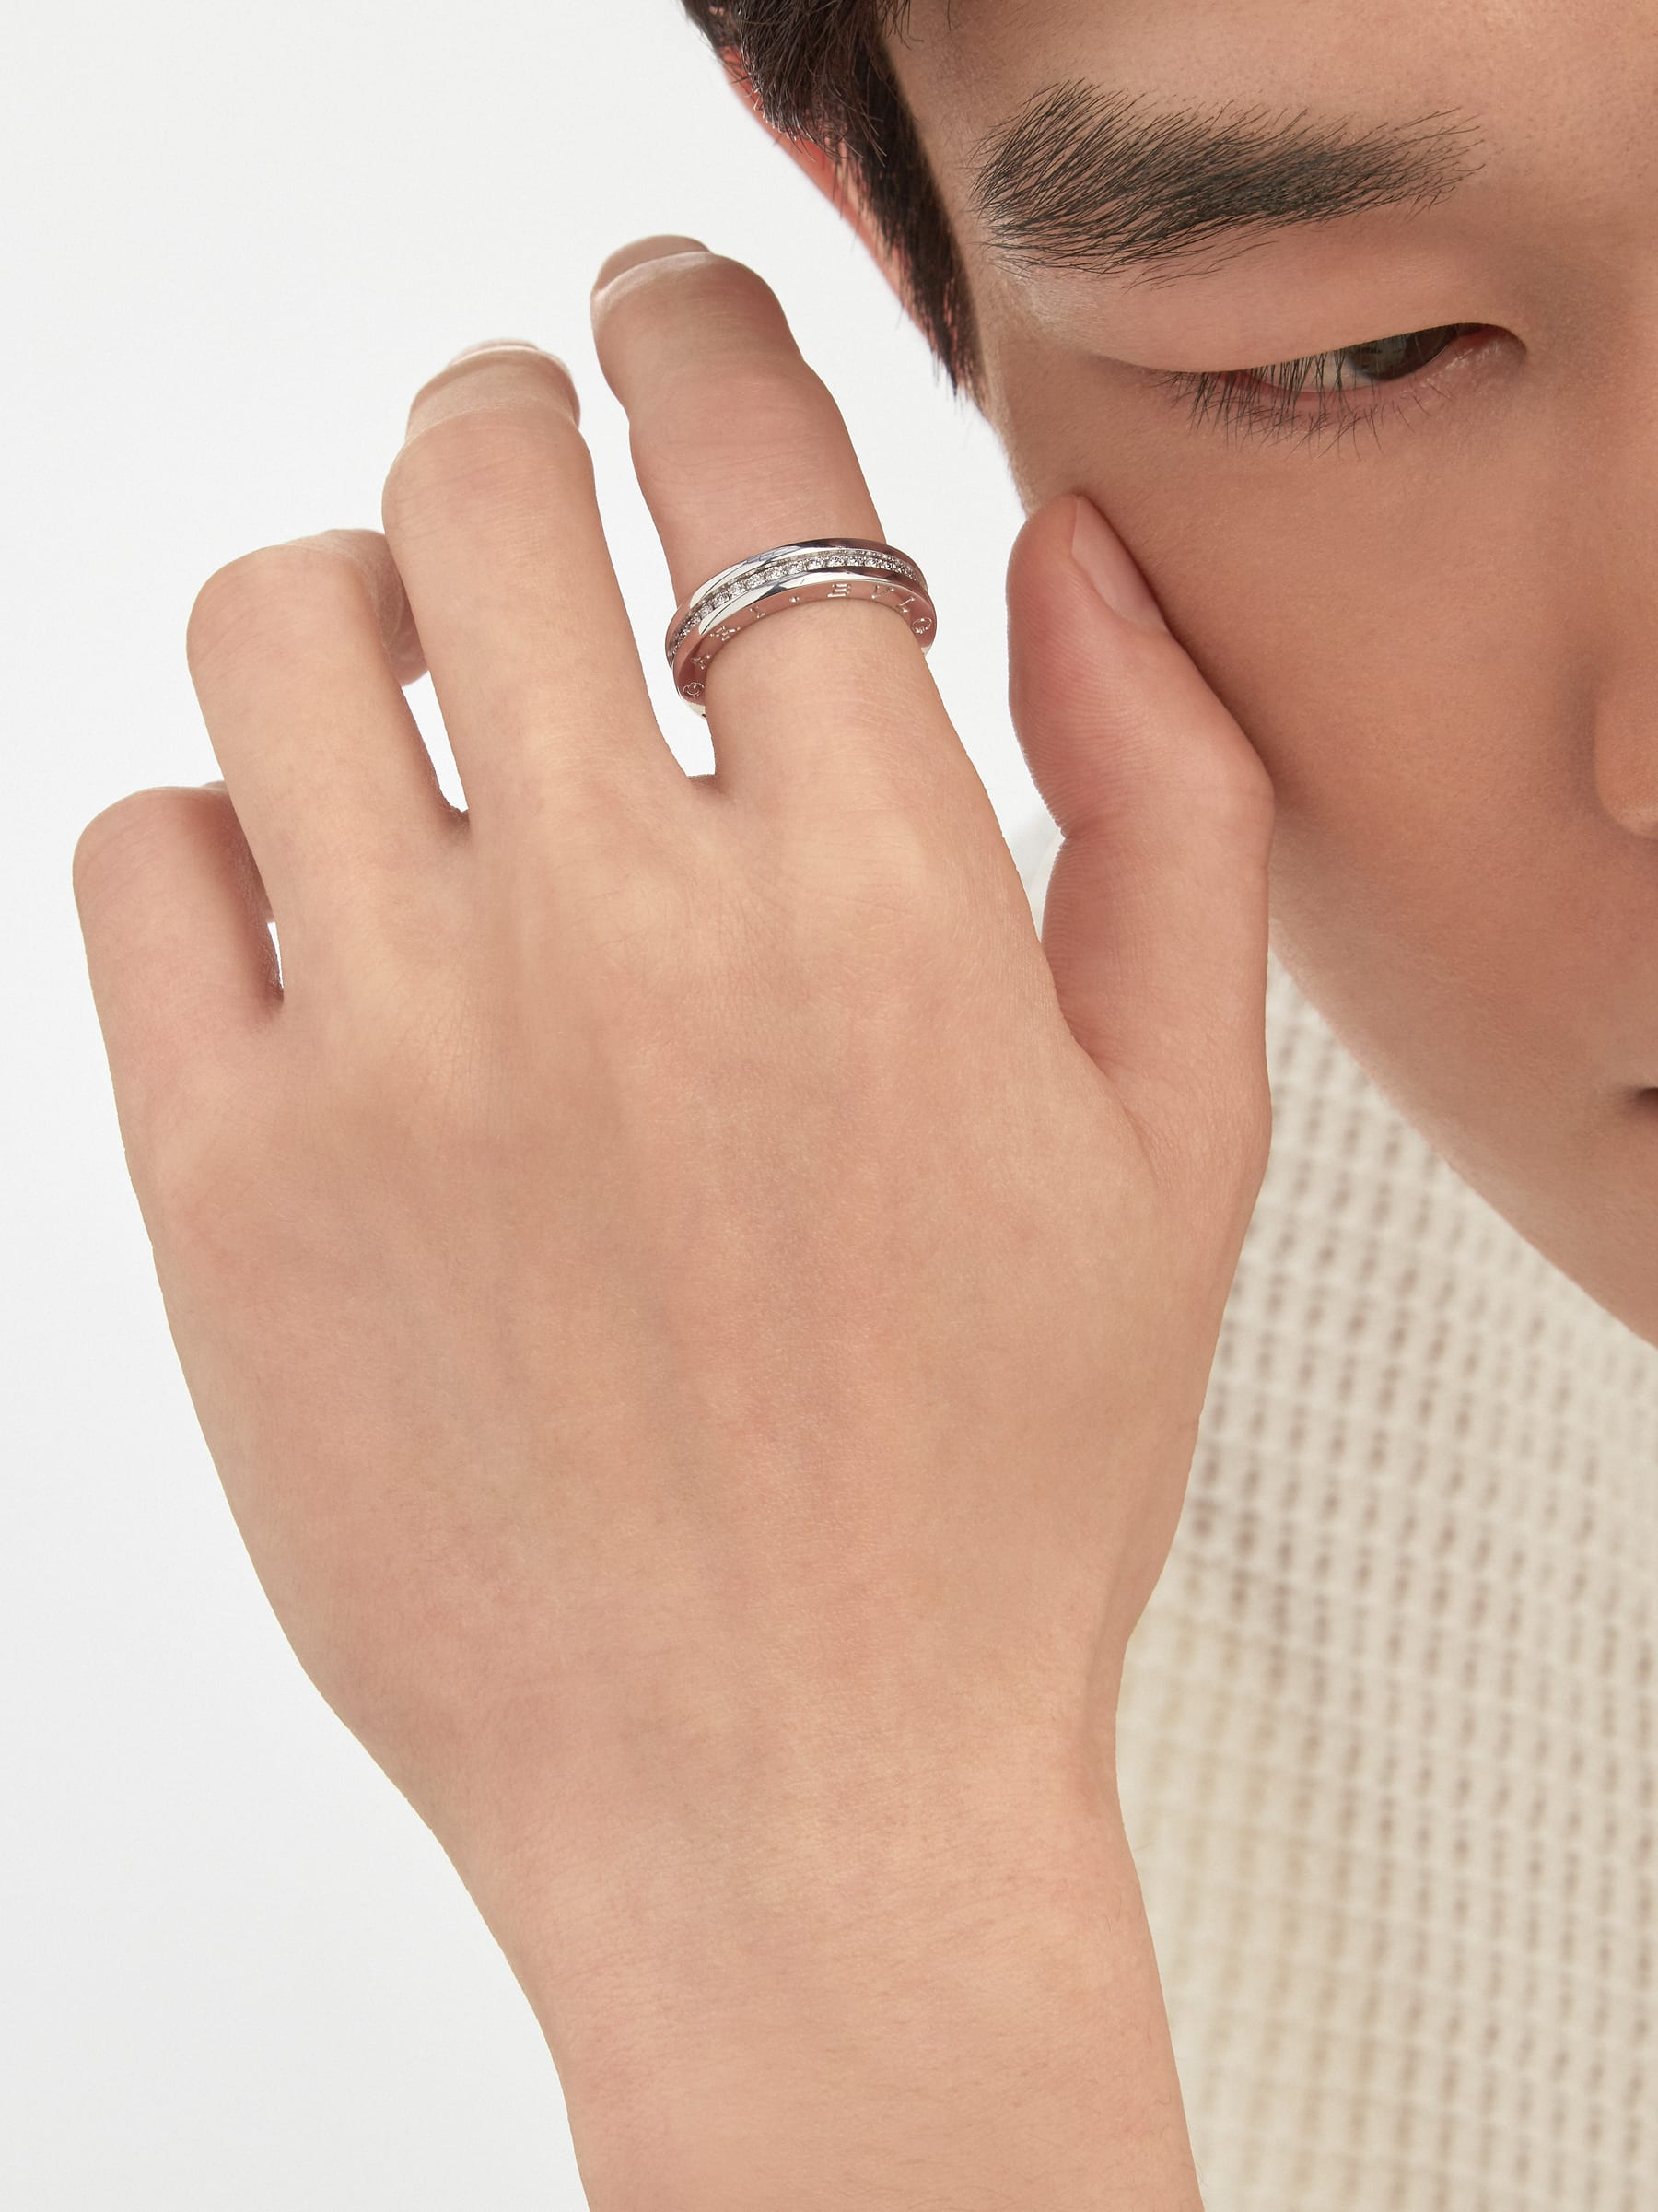 B.zero1 one-band ring in 18 kt white gold, set with pavé diamonds on the spiral. B-zero1-1-bands-AN850656 image 2